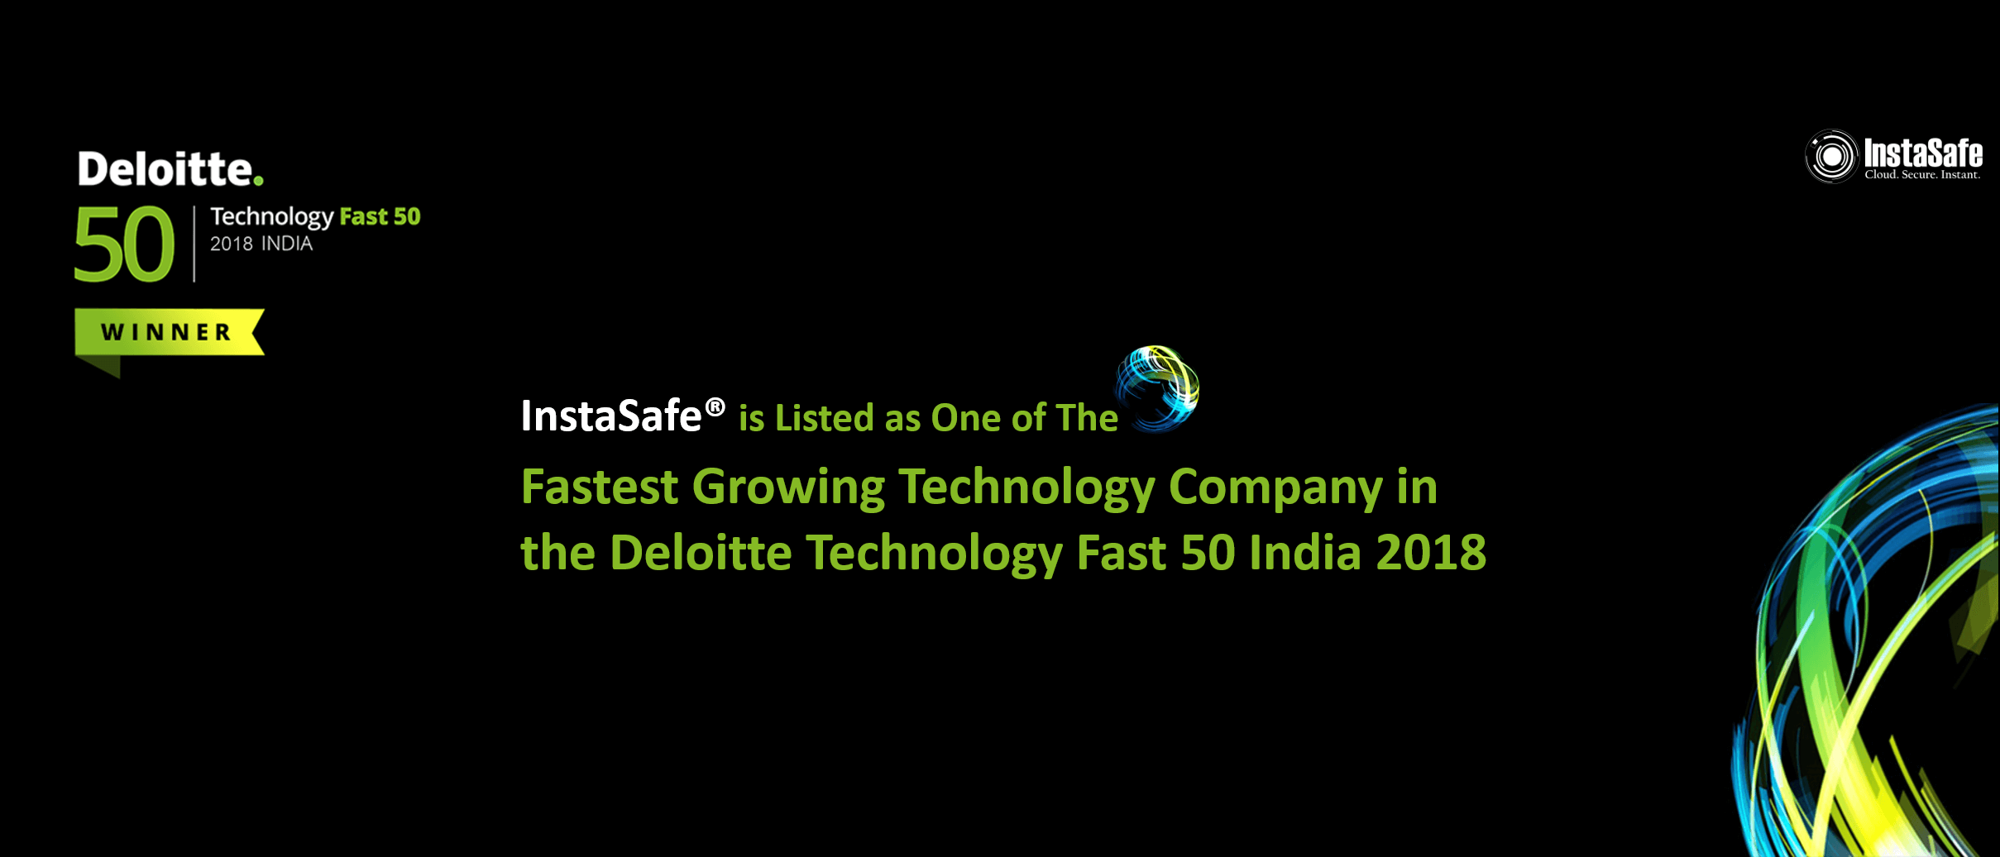 InstaSafe Wins Deloitte Technology Fast 50 India 2018 Award - Website Banner